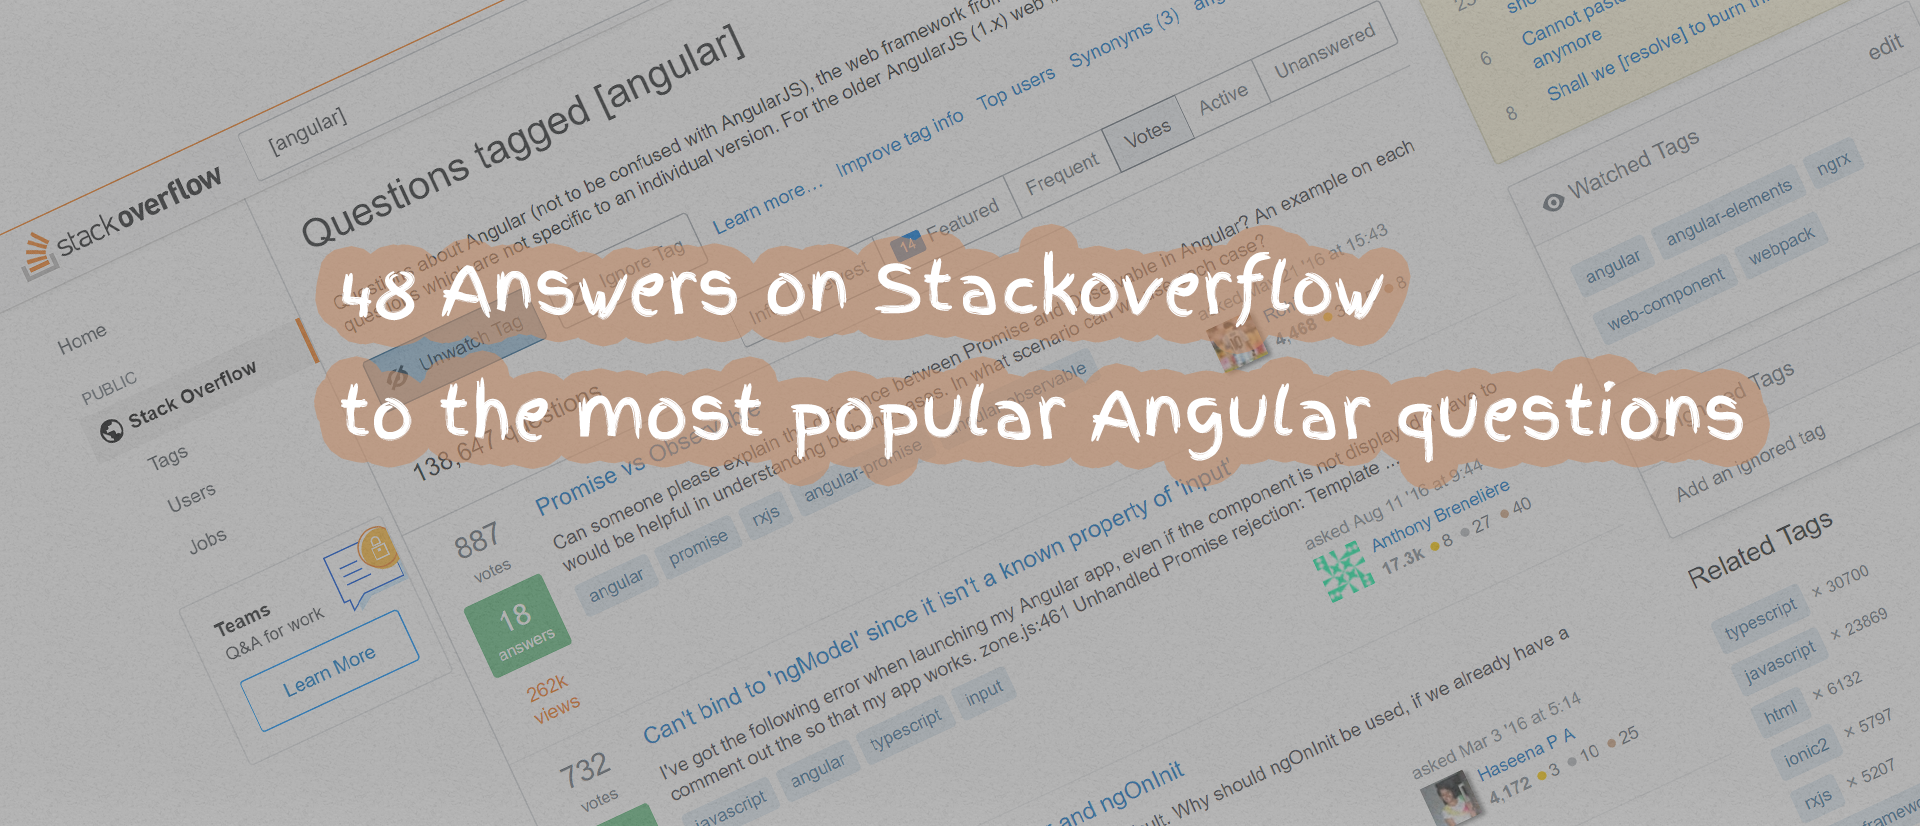 48 answers on StackOverflow to the most popular Angular